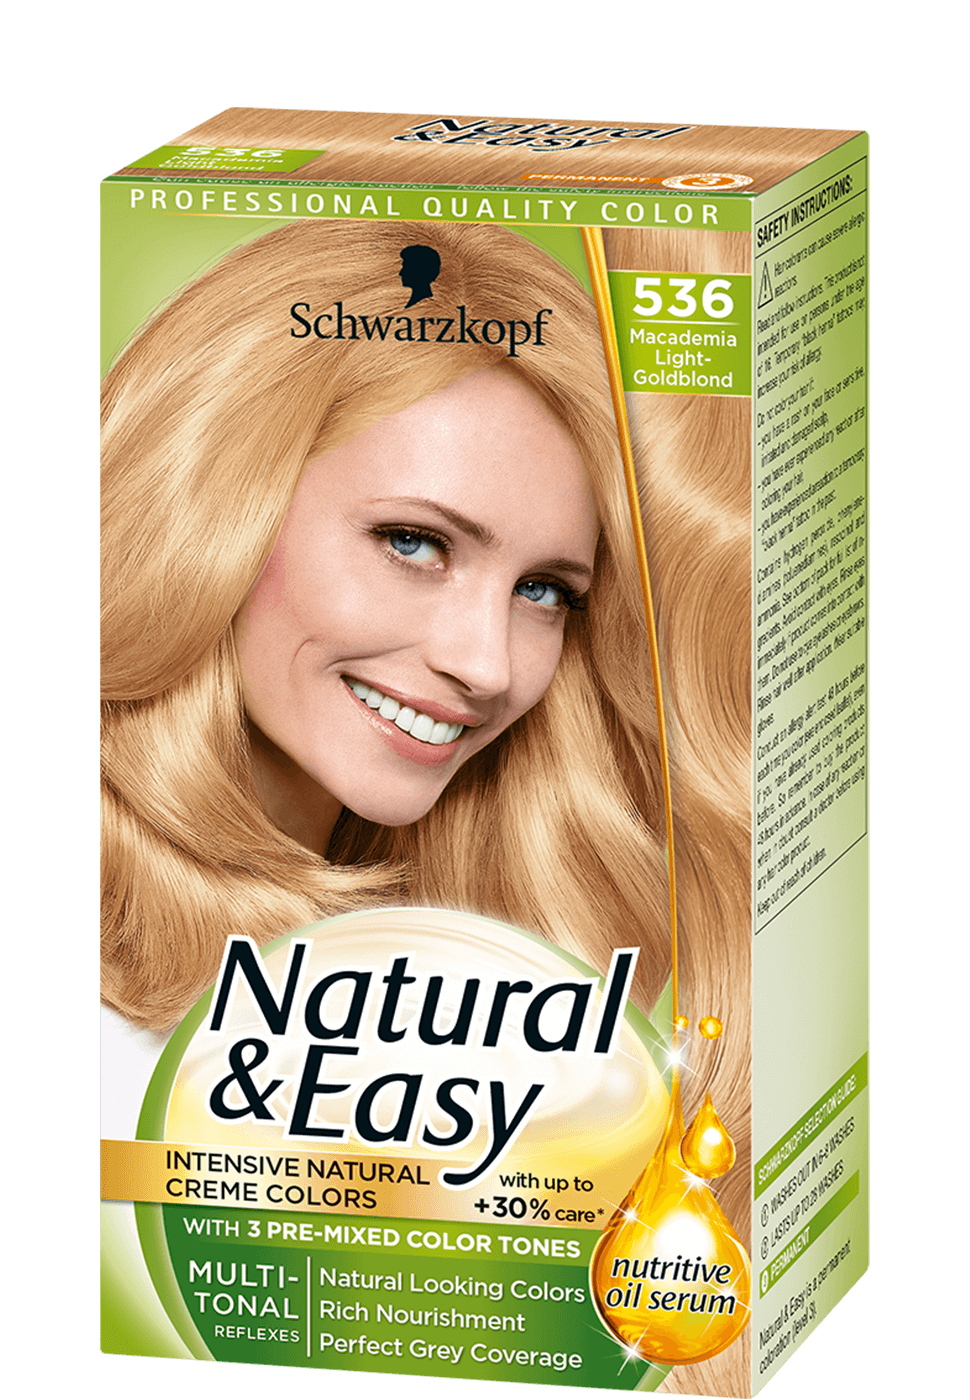 natural_easy_com_blonde_hair_536_macademia_light_goldblond_970x1400